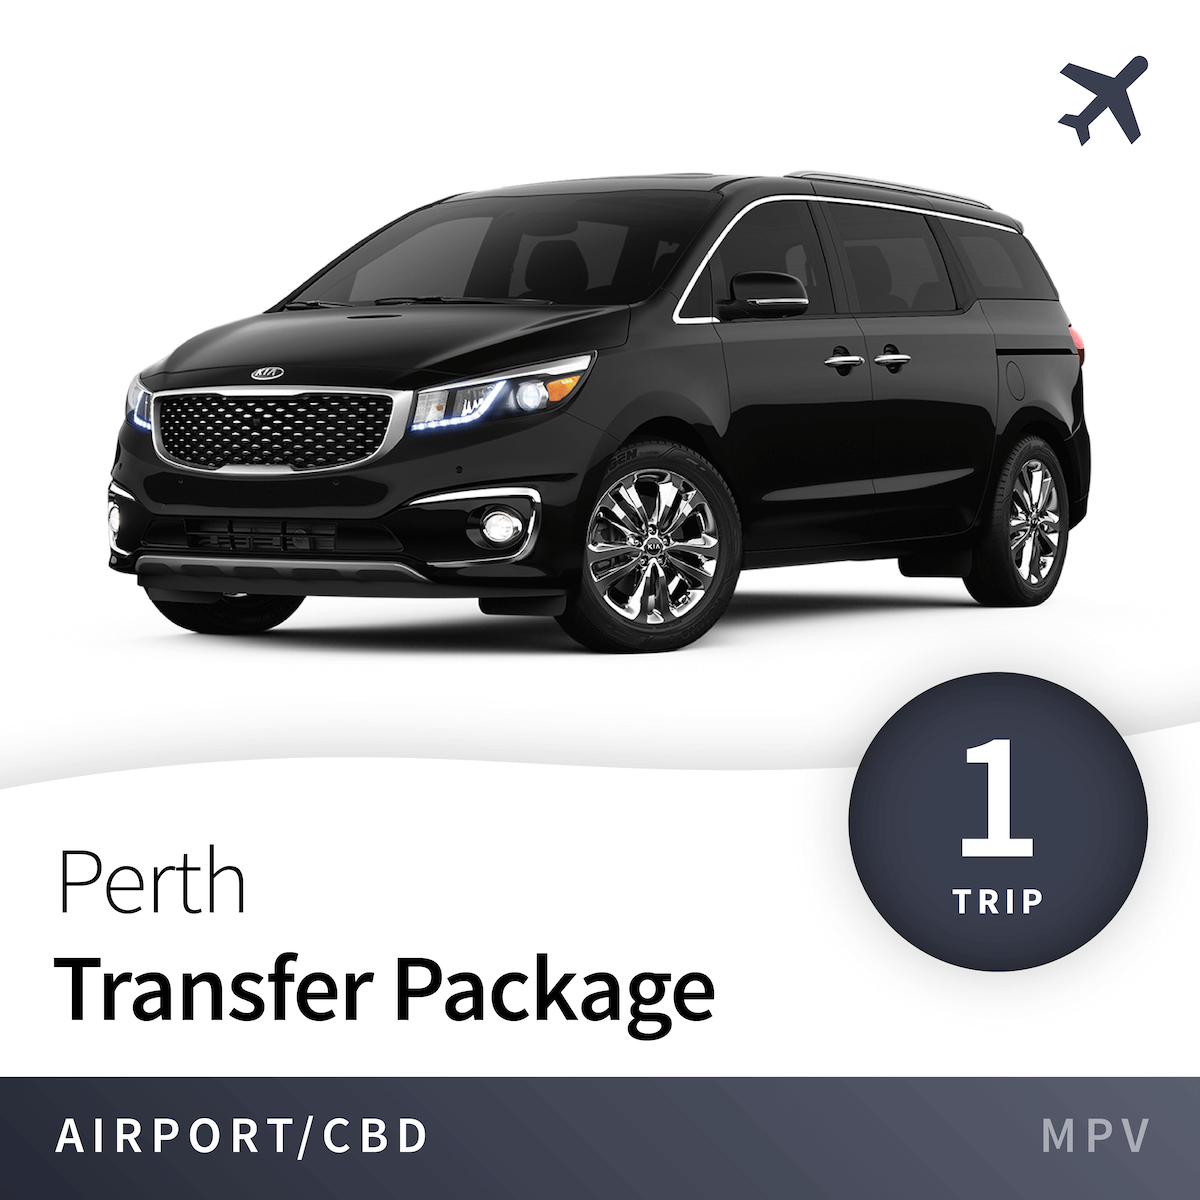 Perth Airport Transfer Package - MPV (1 Trip) 11